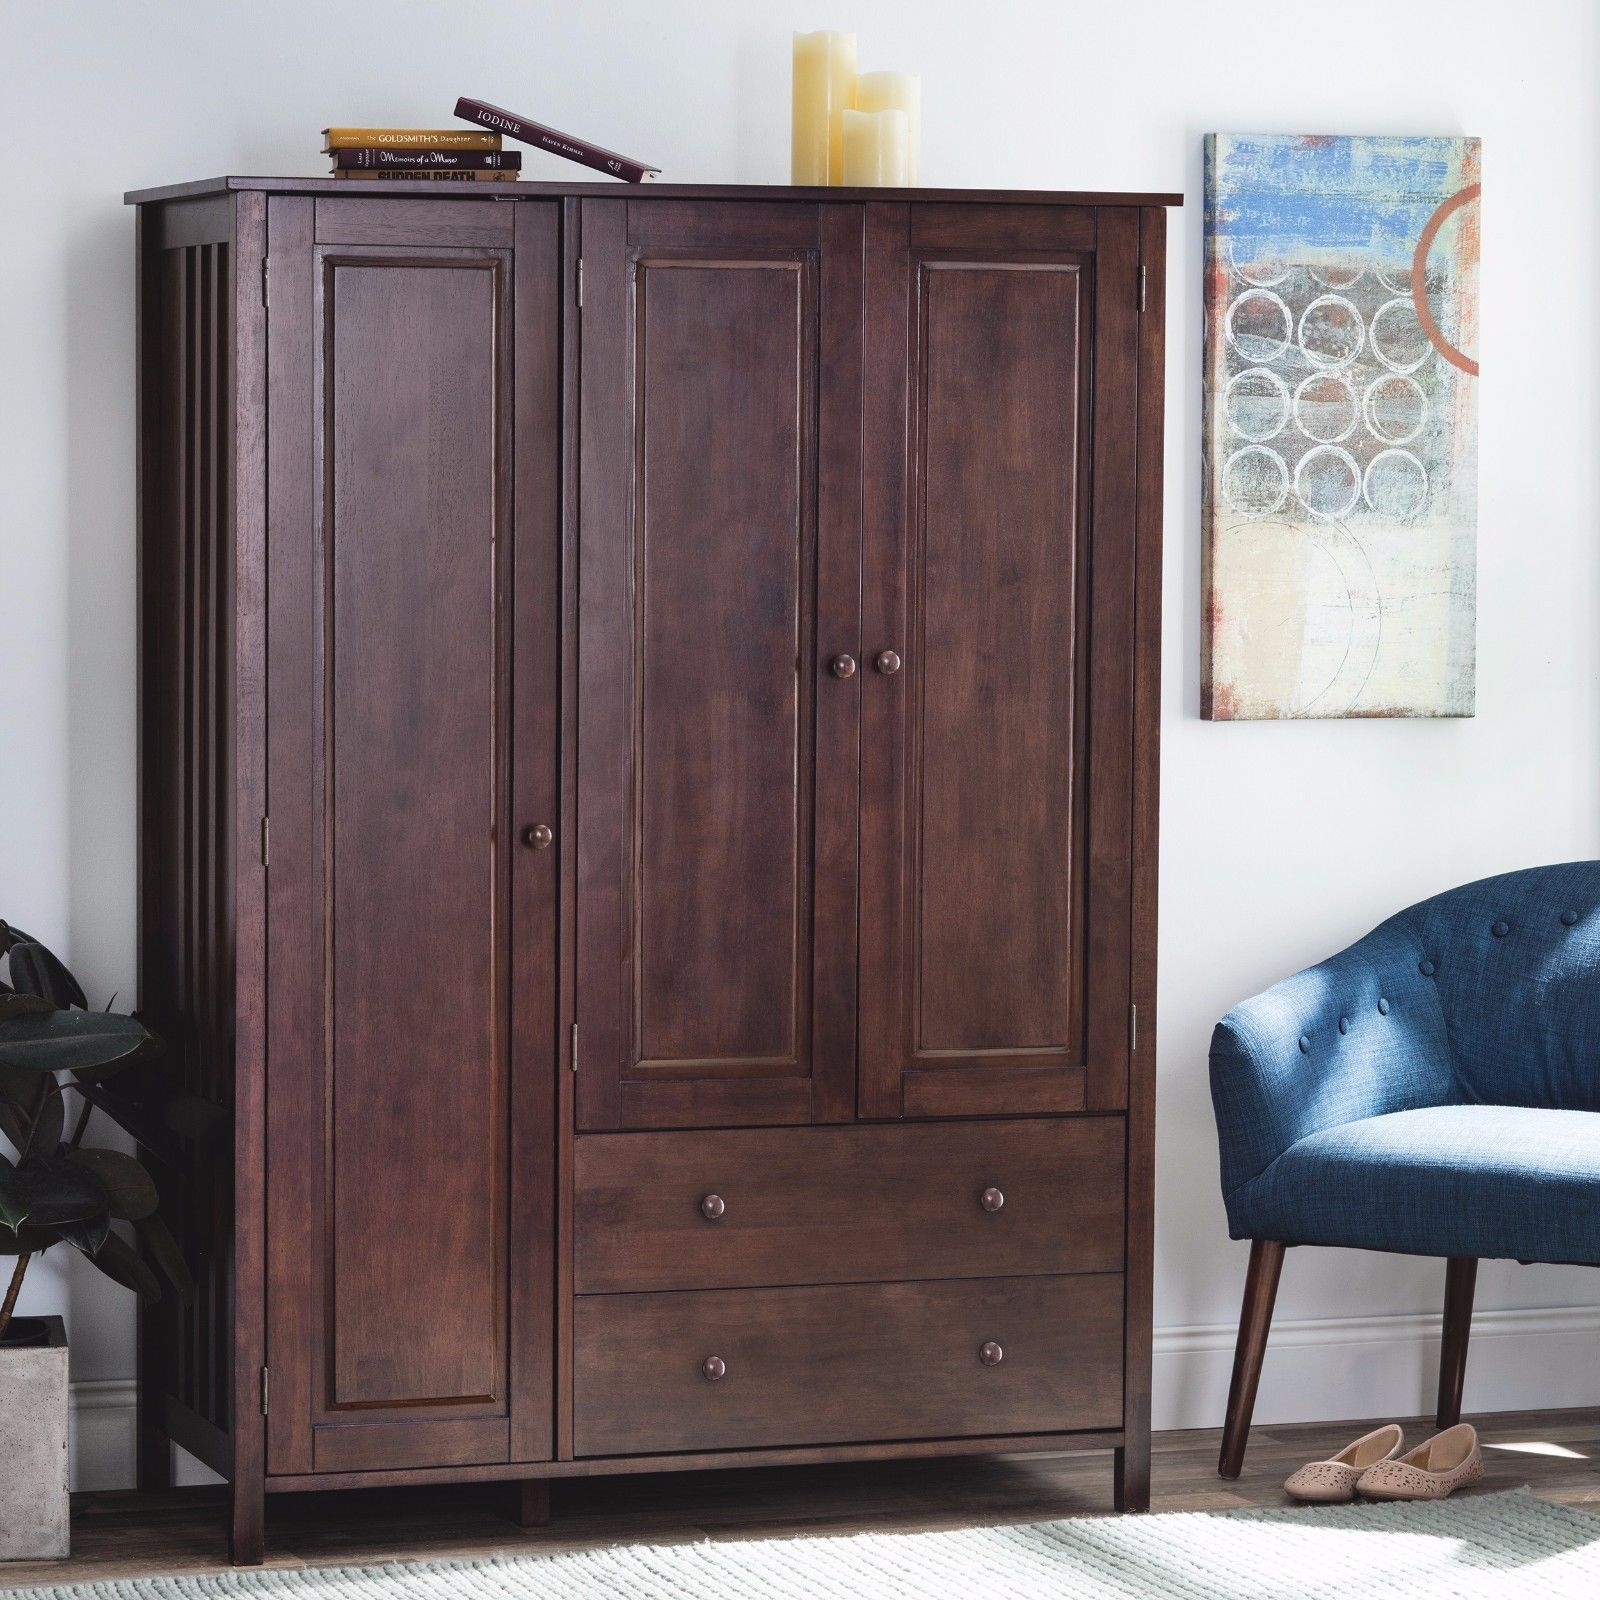 Storage: Armoire Ikea | Bedroom Wardrobe Armoires | Wardrobe ...